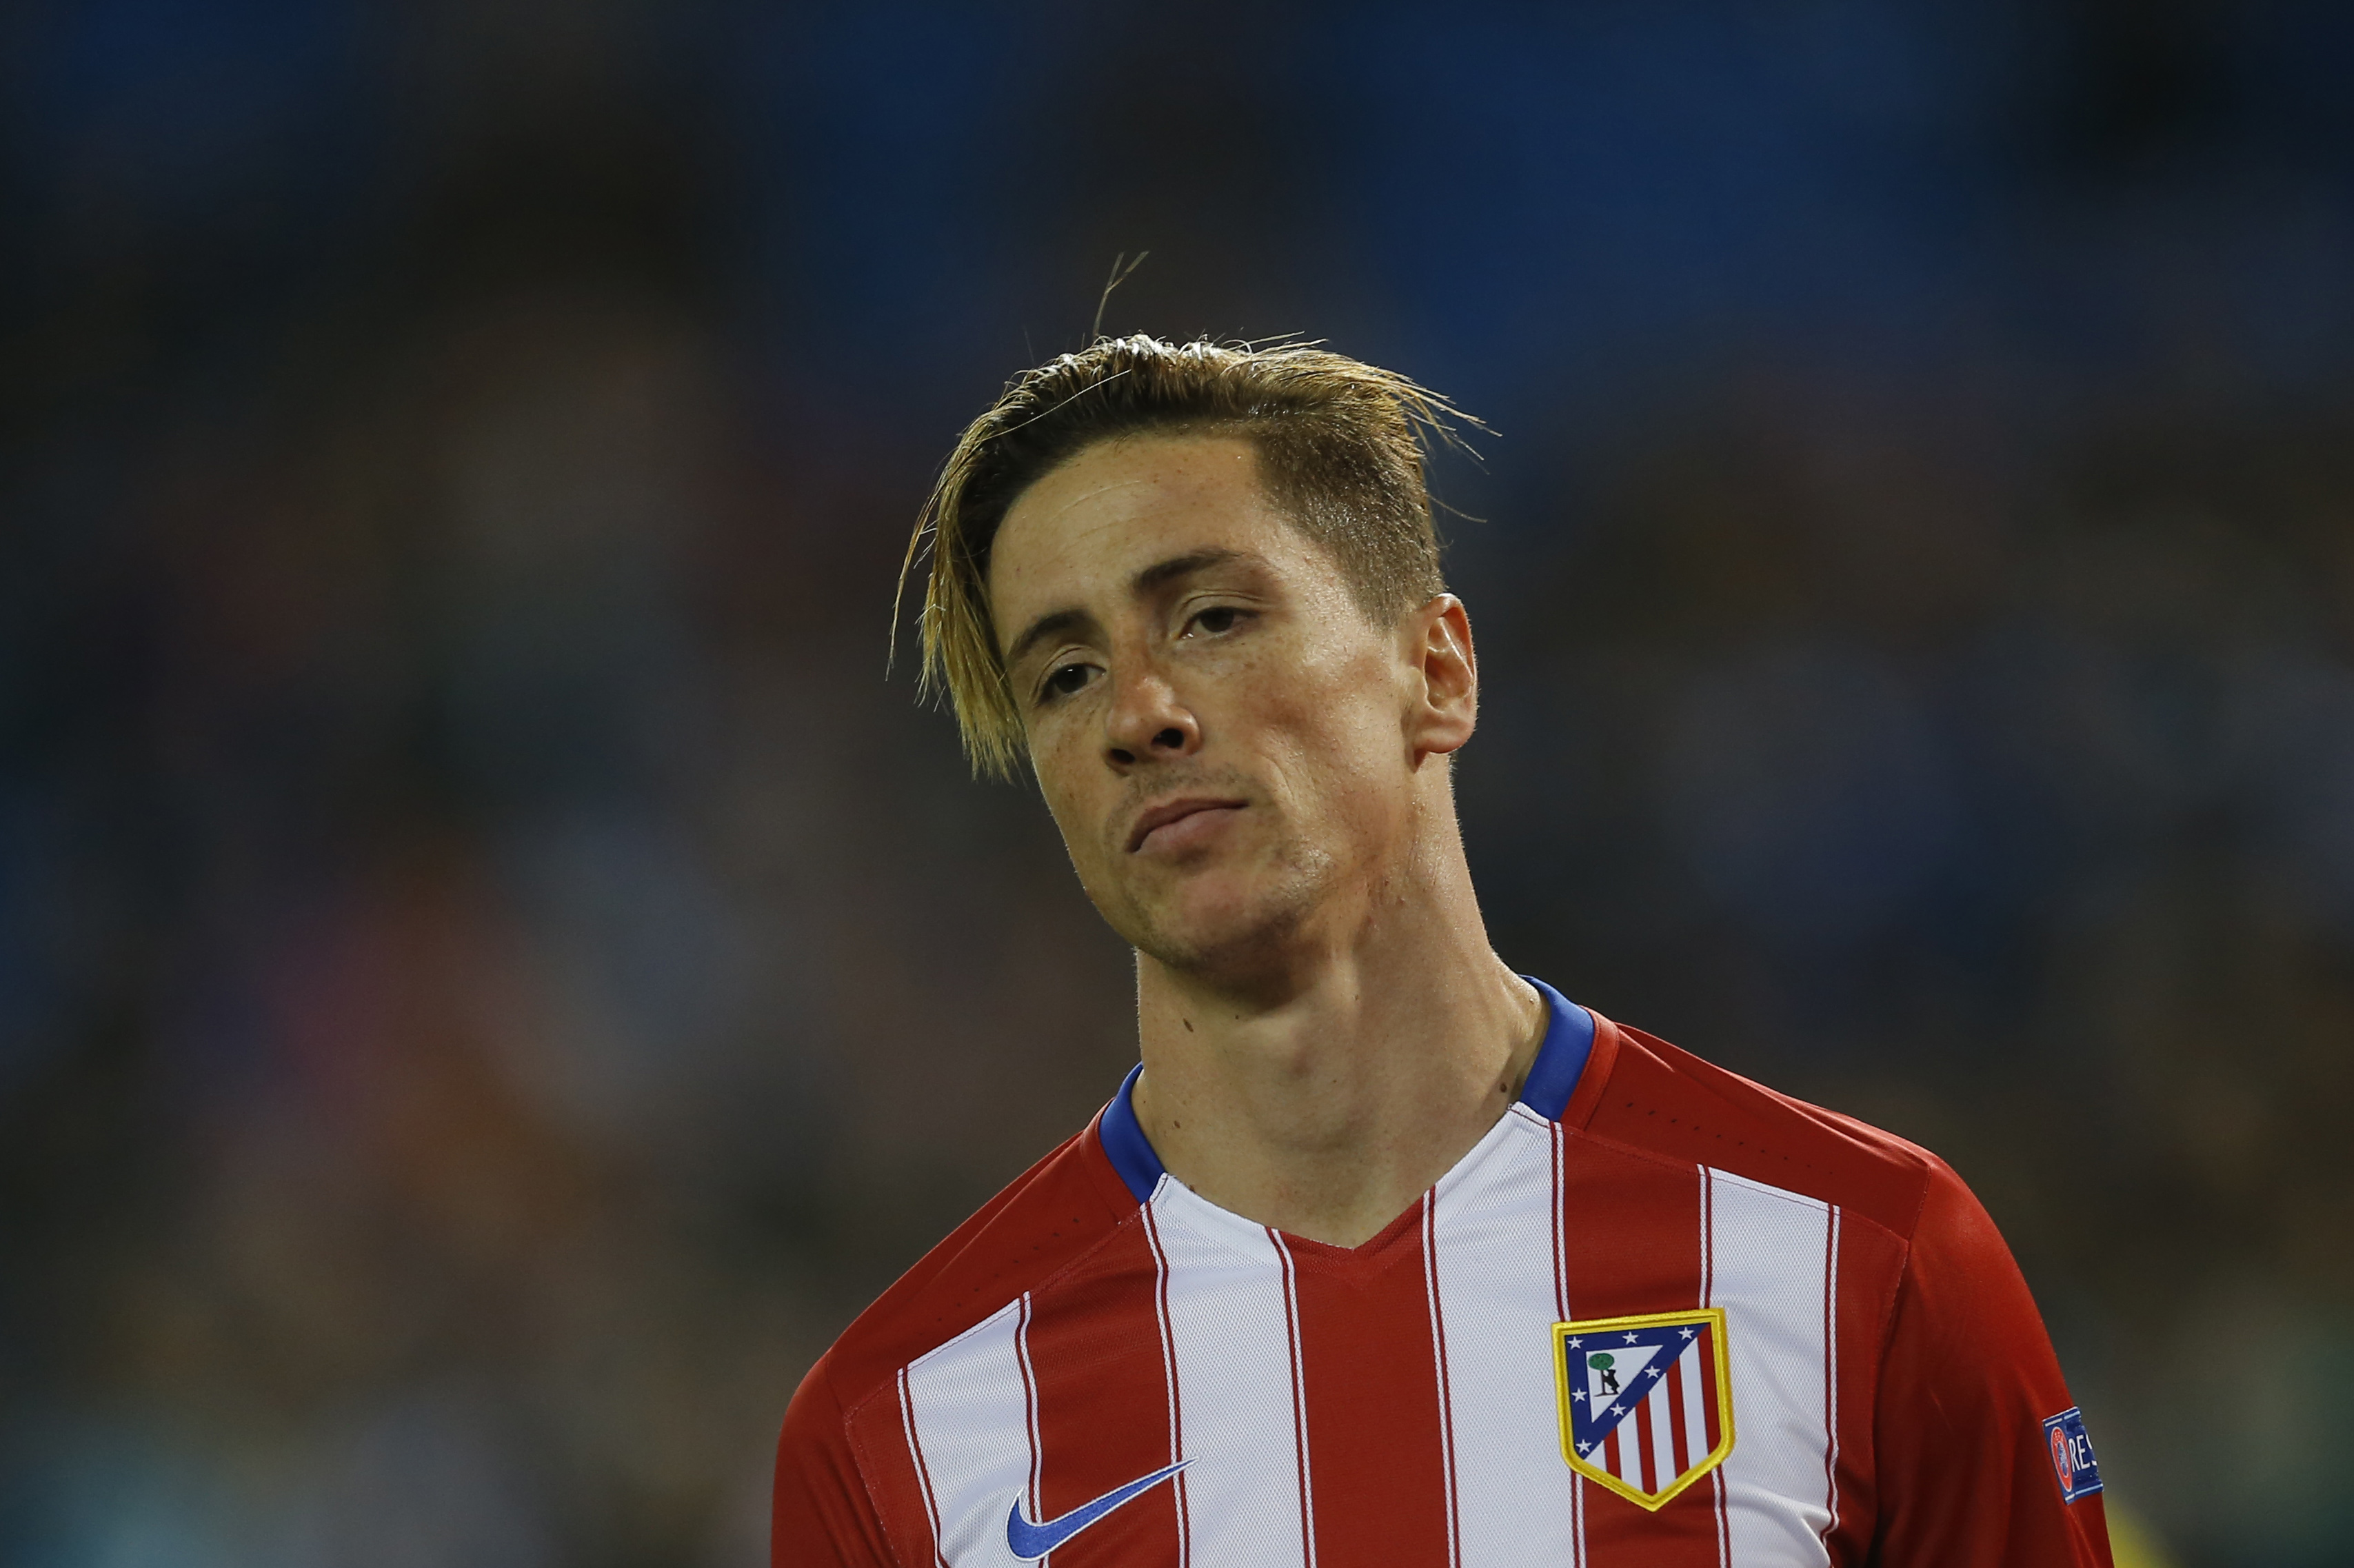 Atletico's Fernando Torres looks on during the Champions League group C soccer match between Atletico Madrid and Astana at the Vicente Calderon stadium in Madrid, Wednesday, Oct. 21, 2015.  (AP Photo/Francisco Seco)